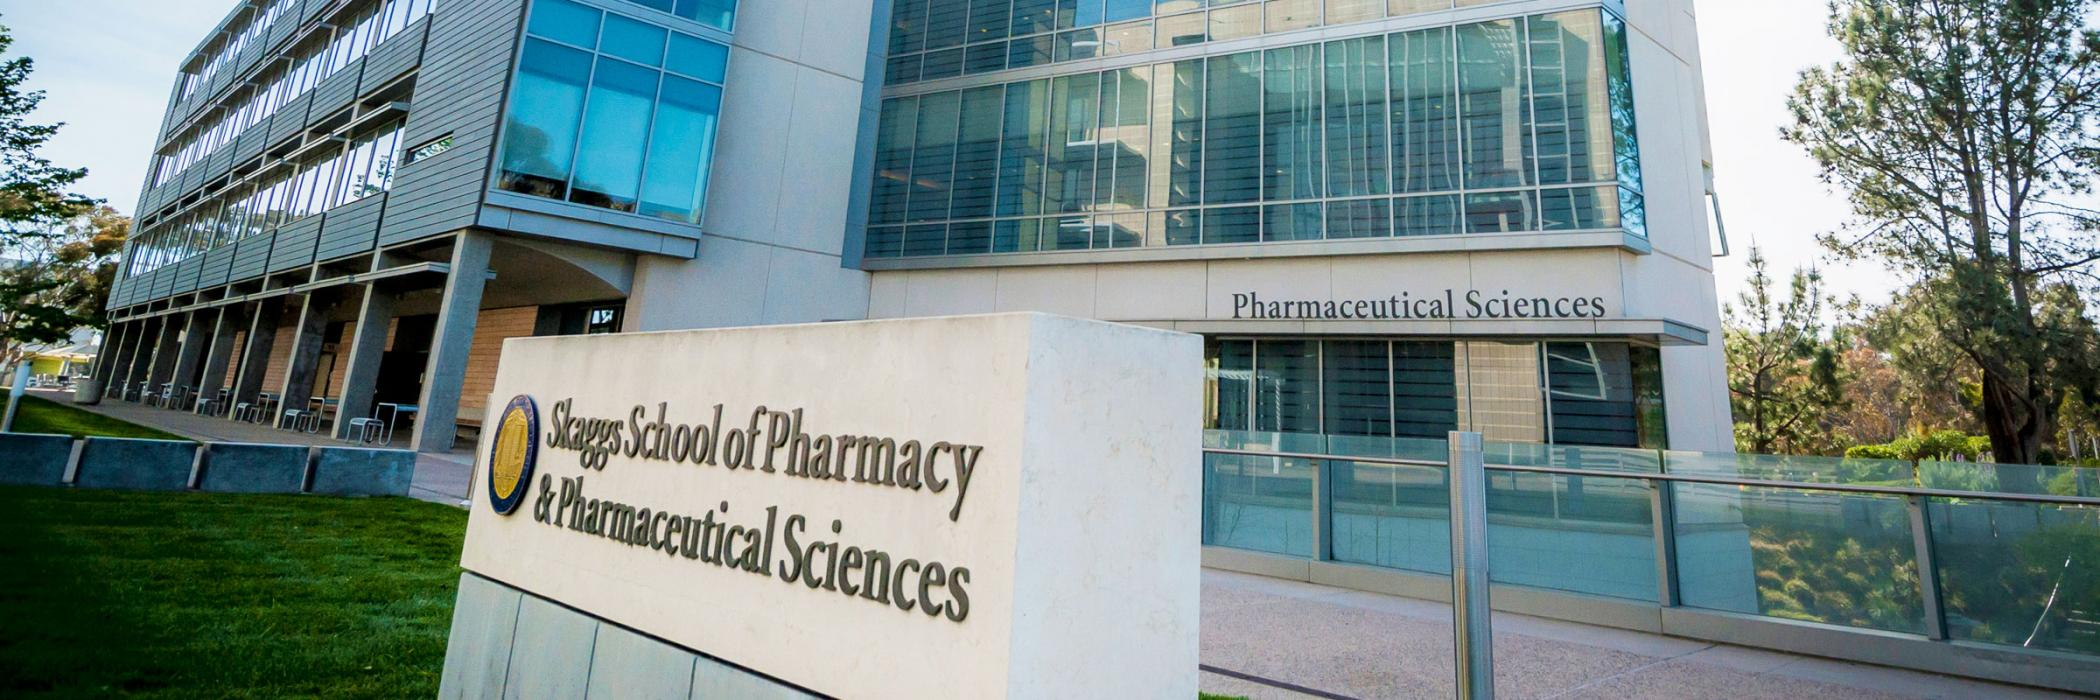 Ucsd Academic Calendar 2020-2021 Welcome to Skaggs School of Pharmacy and Pharmaceutical Sciences